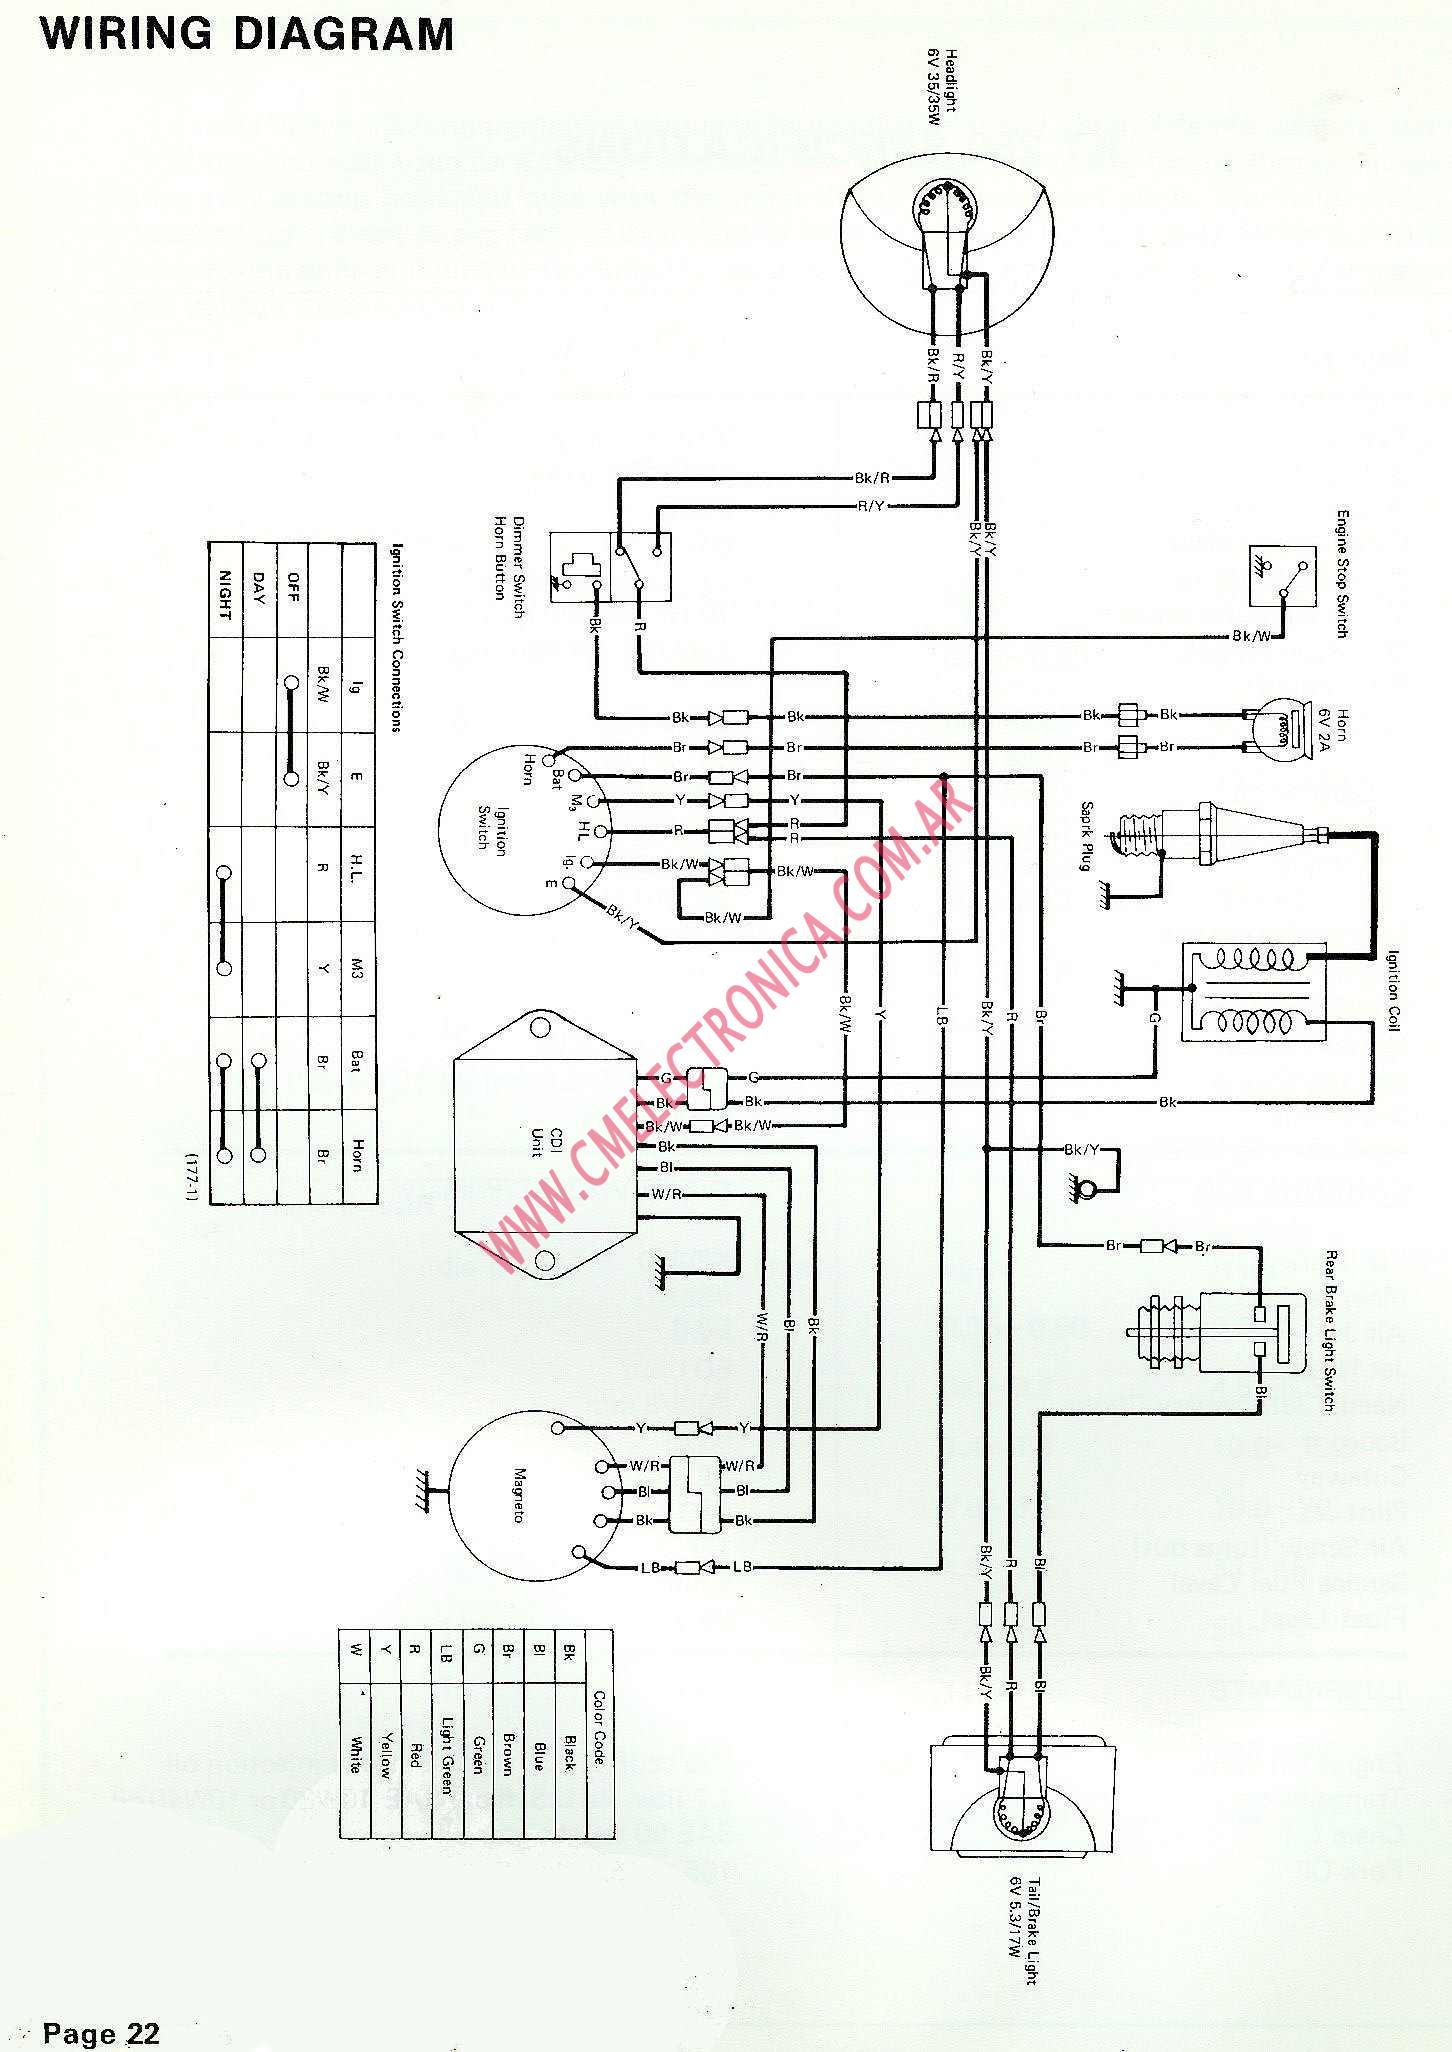 Kawasaki A7 Wiring Diagram Enthusiast Diagrams Gpz900r Cdi Free Engine Image For User Manual Download 2006 Klr650